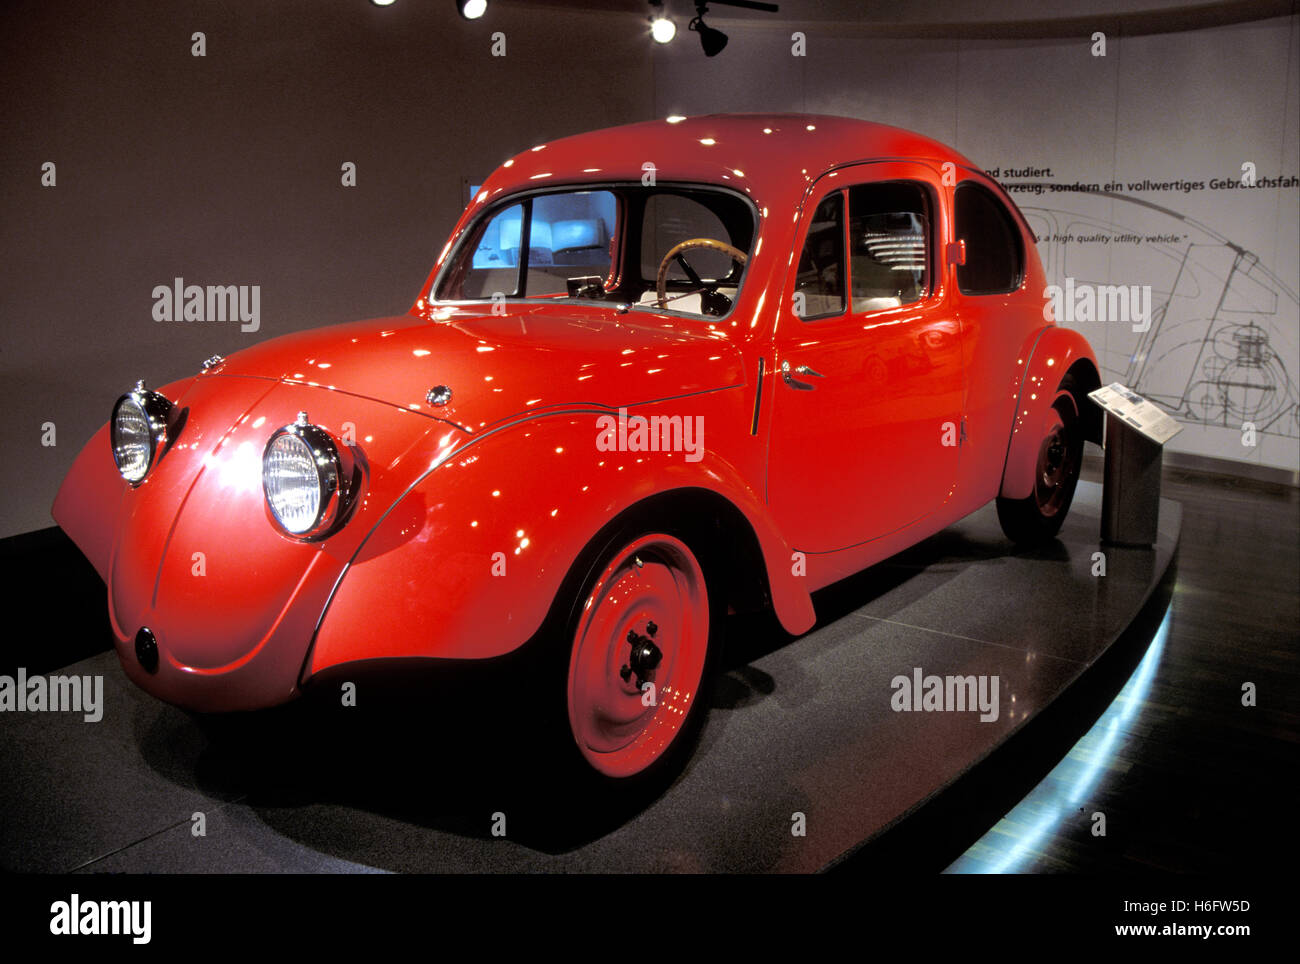 Germany, Wolfsburg, the Volkswagen Autostadt, VW Beetle prototype from 1935 at the Zeithaus. - Stock Image